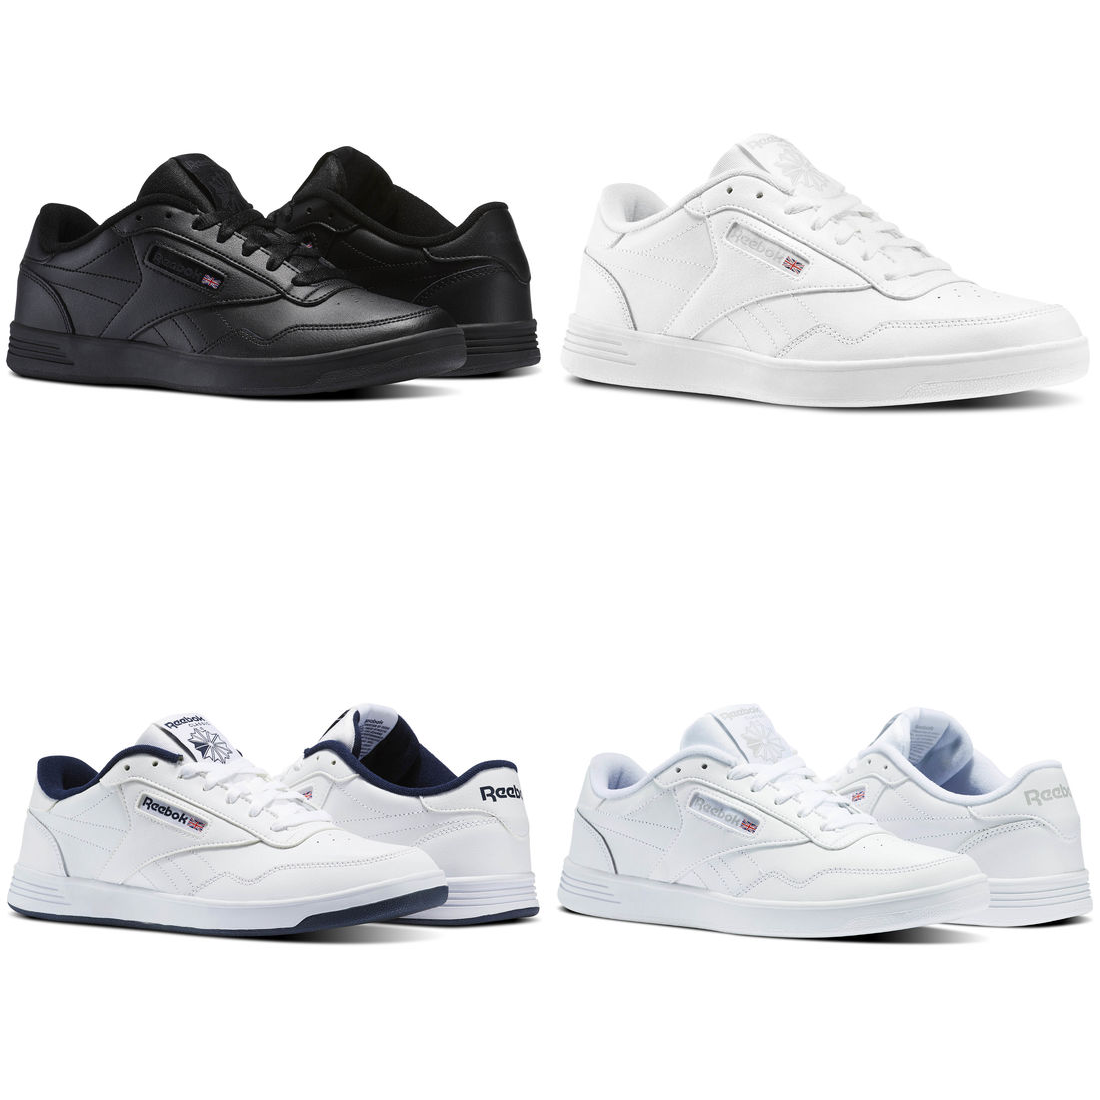 Head over to Reebok and get this Men Classics Club Memt Shoes for  24.99  (Reg.  60) when you use promo code  CLASSIC24 at checkout. 3c580627e